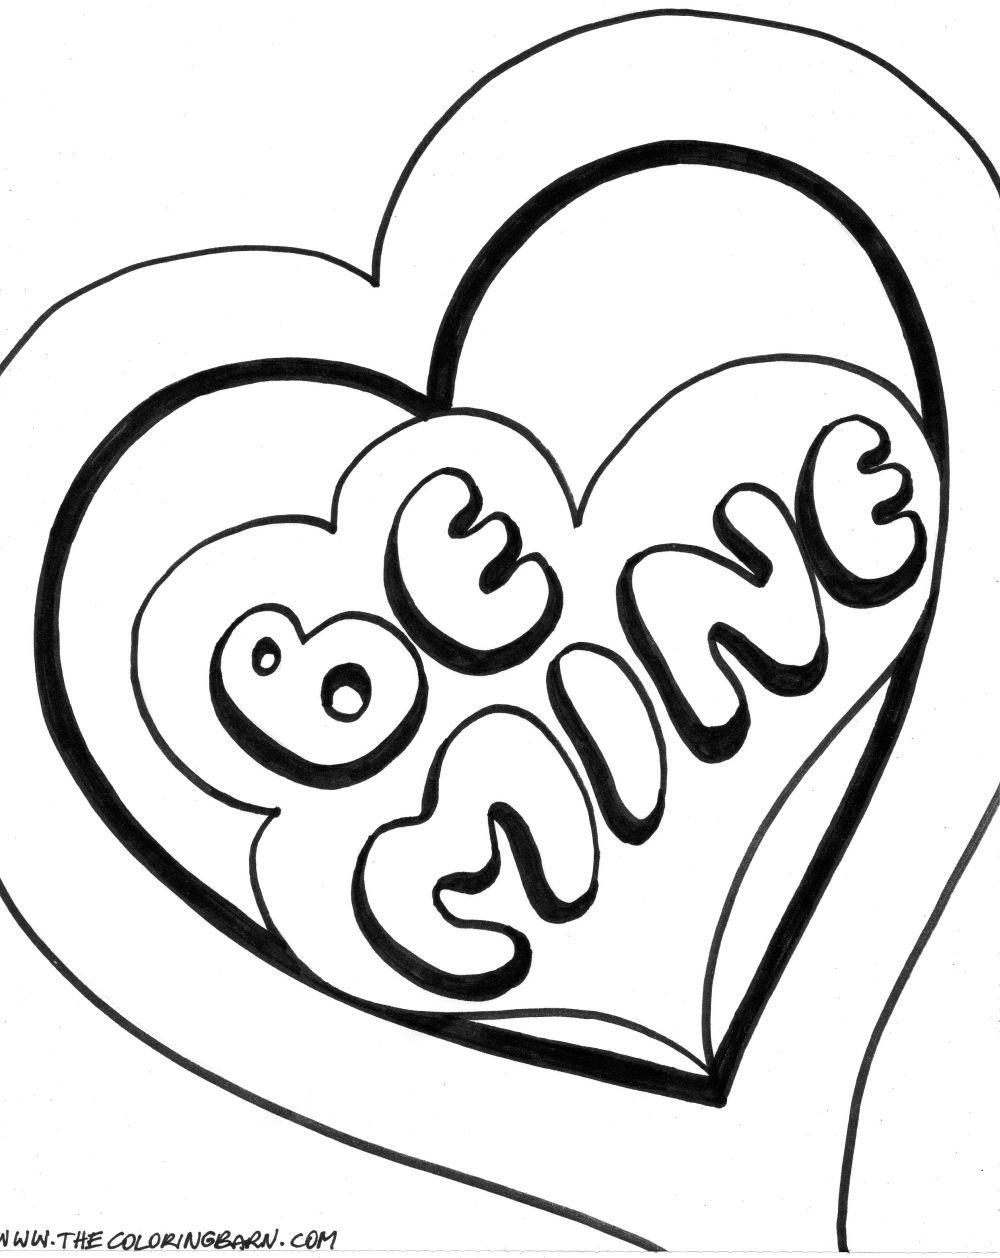 1000x1258 Skill Double Heart Coloring Pages Cute Valenti